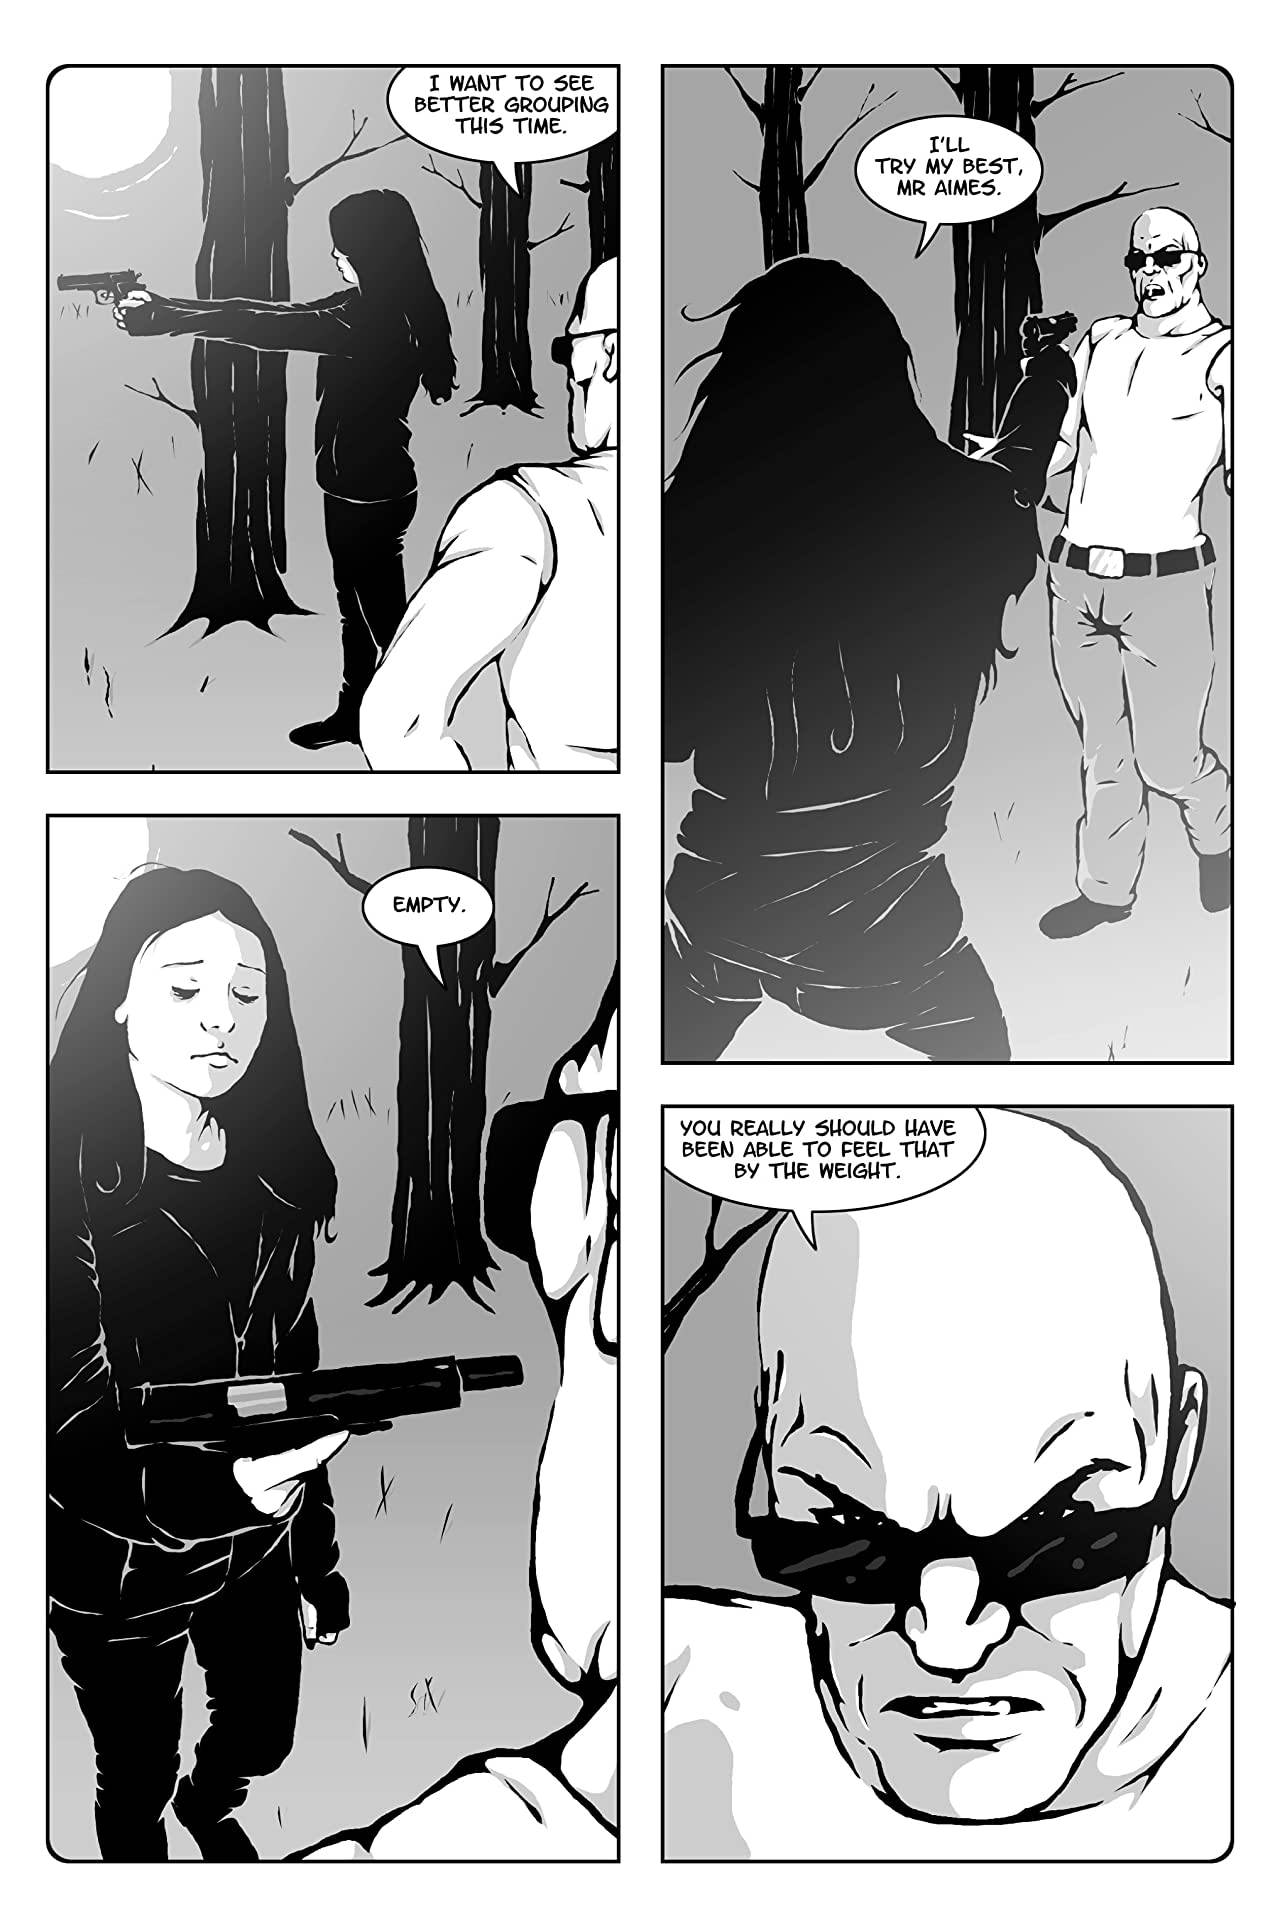 Hollow Girl #4